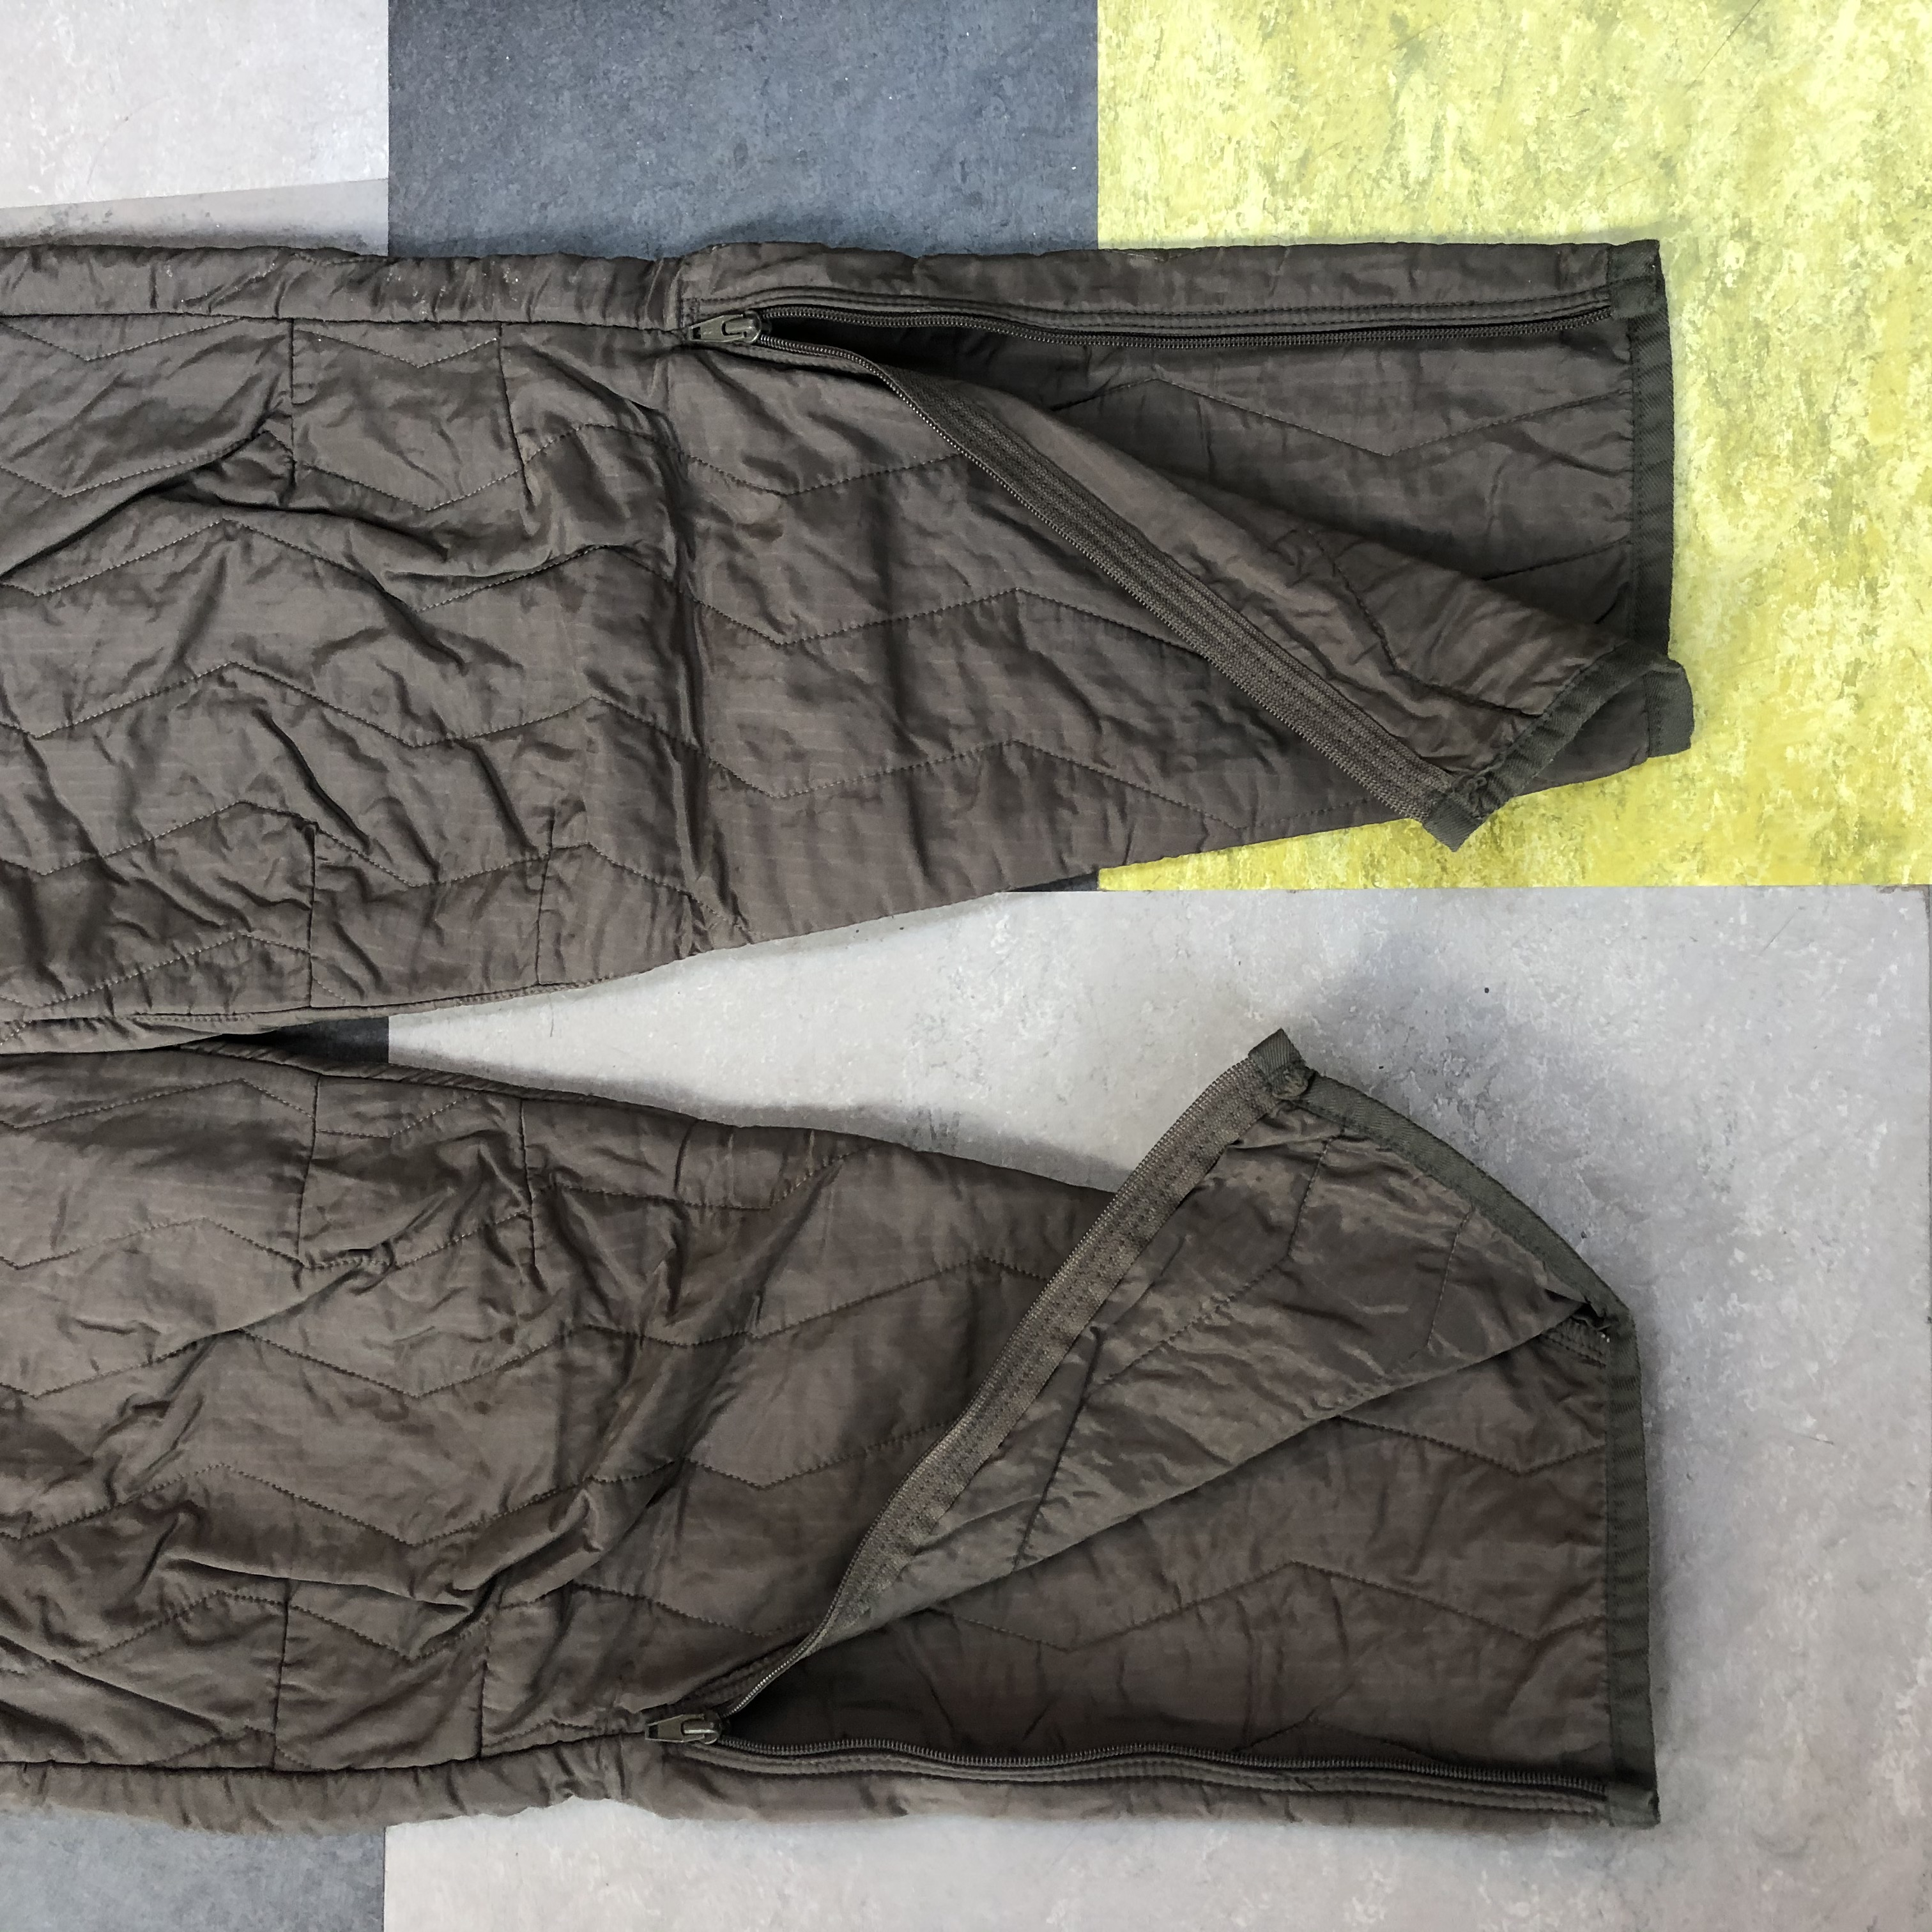 Vintage quilted boilersuit with pocket